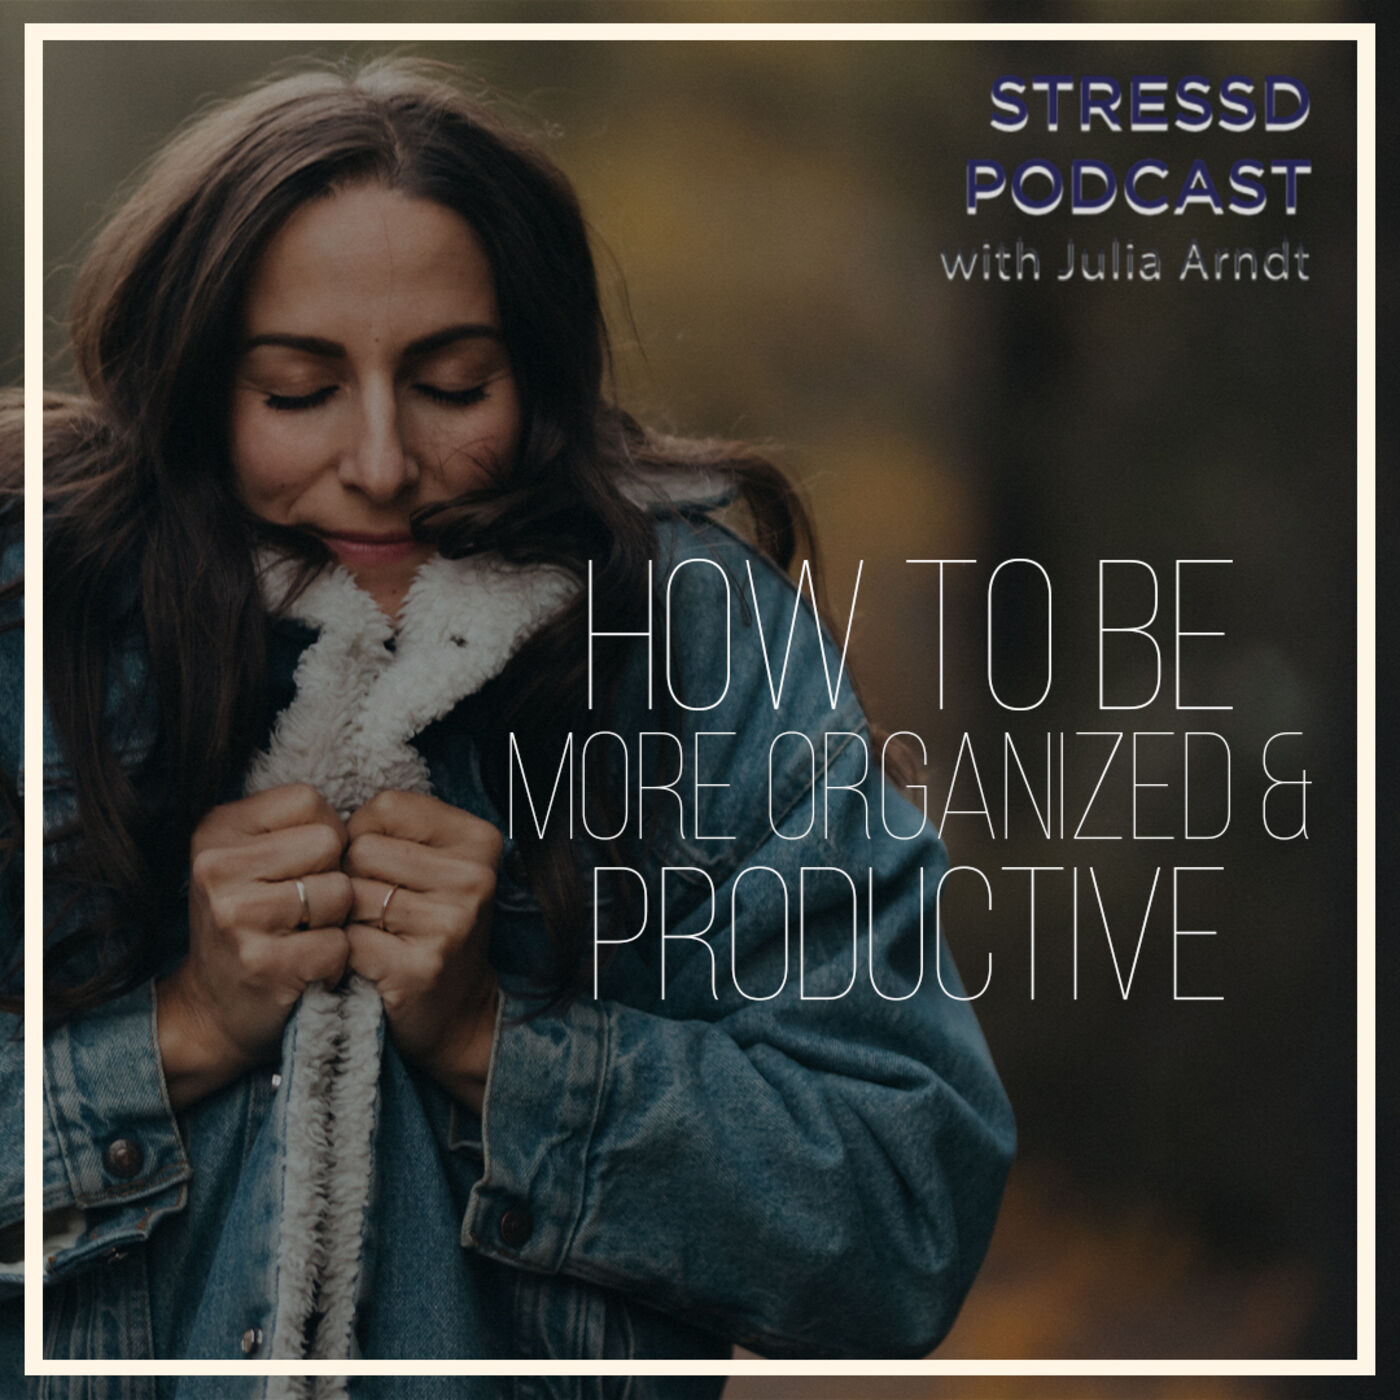 How To Be More Organized & Productive